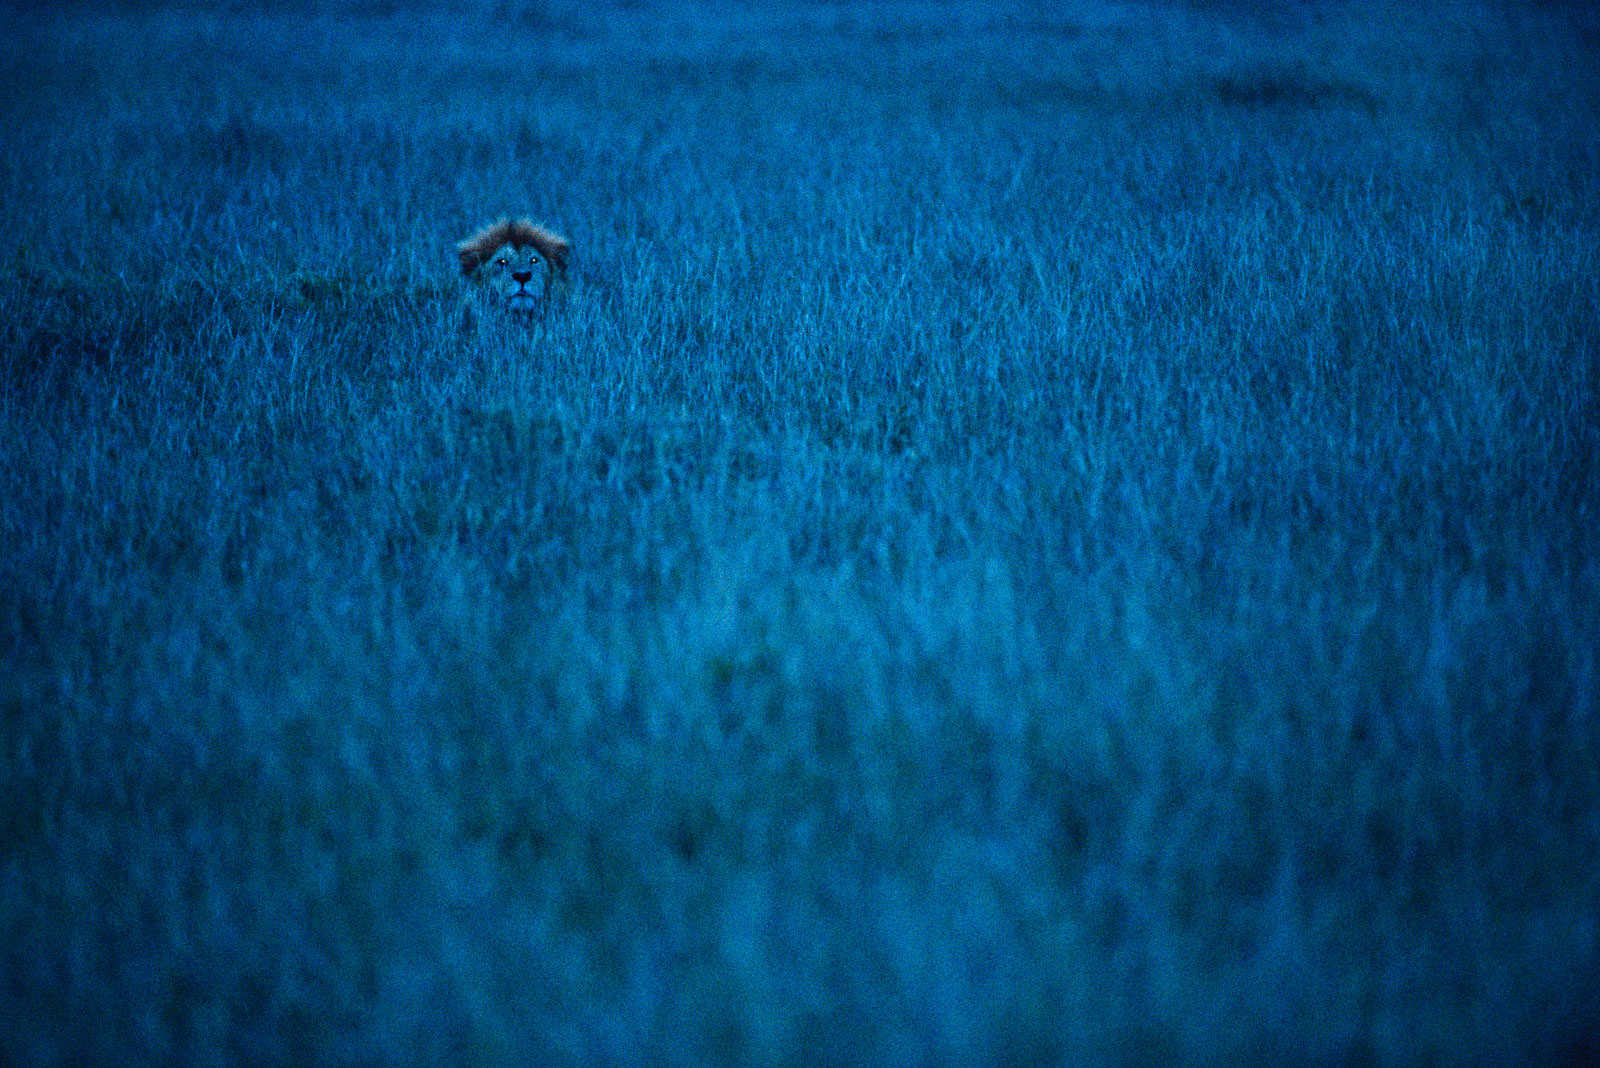 Lion at twilight, Masai Mara Reserve, Kenya